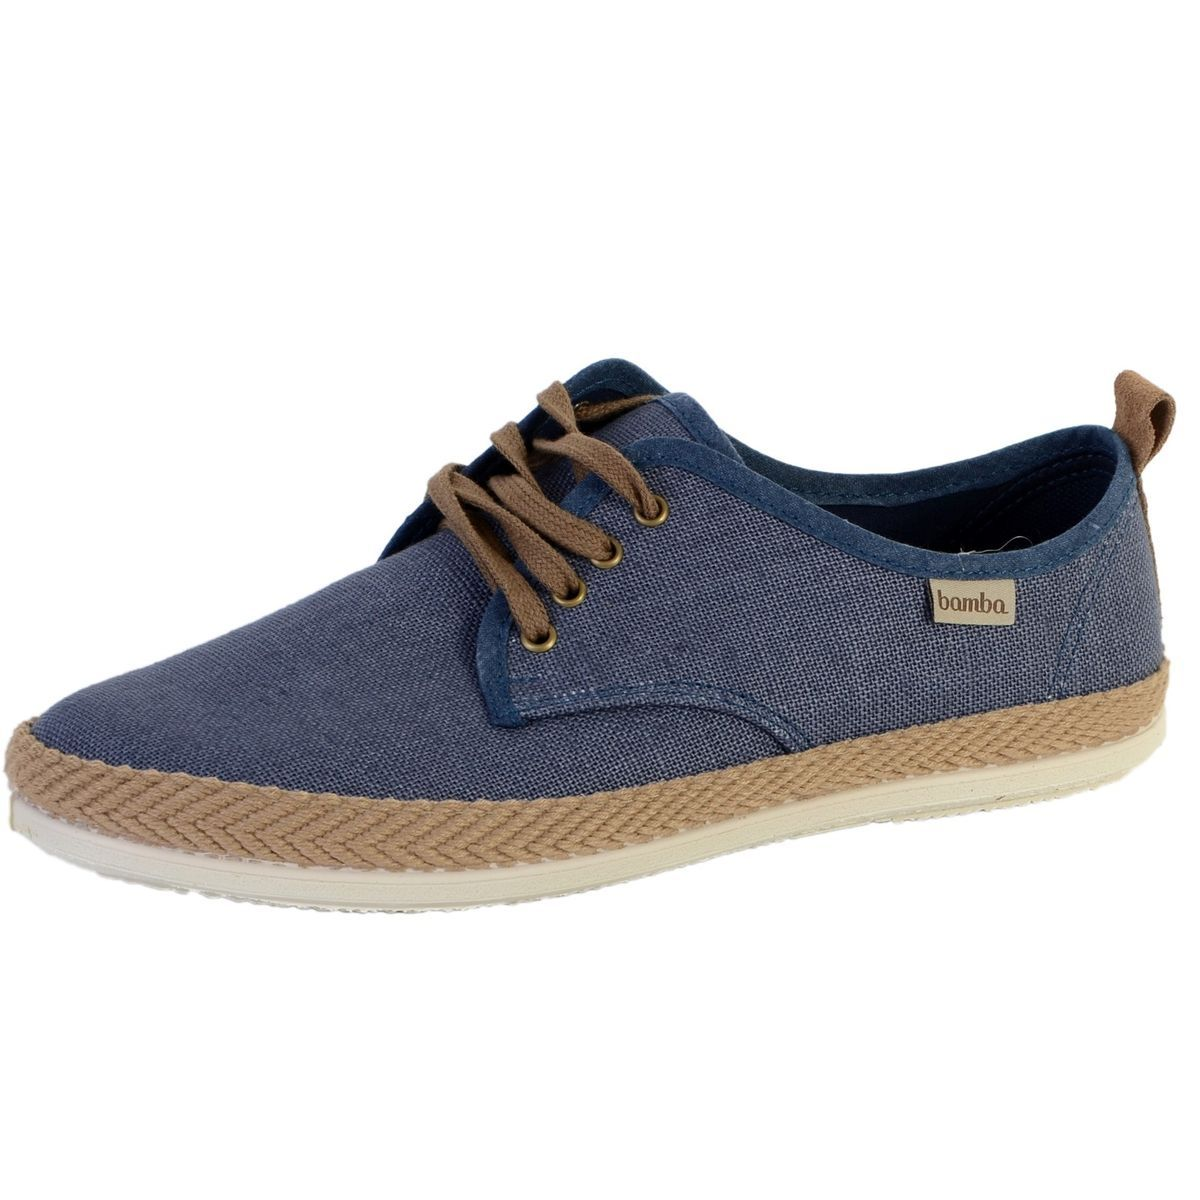 Espadrille Bamba By 520052 Marine Taille : 40 | Products